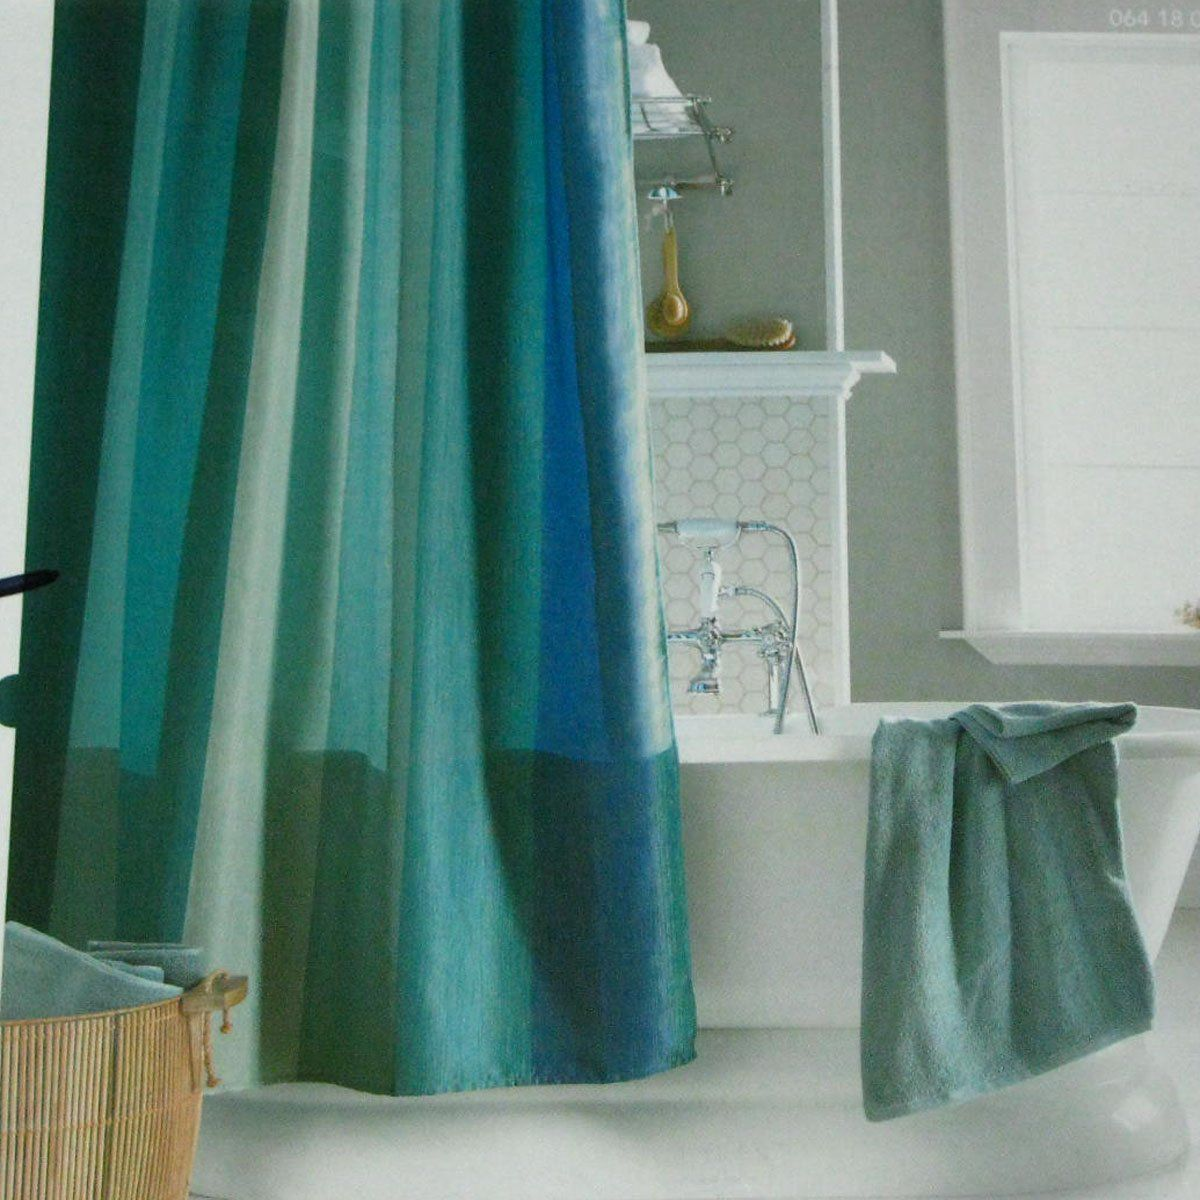 Pin By Flo Jaworski On Decor Ideas With Images Green Shower Curtains Blue Shower Curtains Fabric Shower Curtains